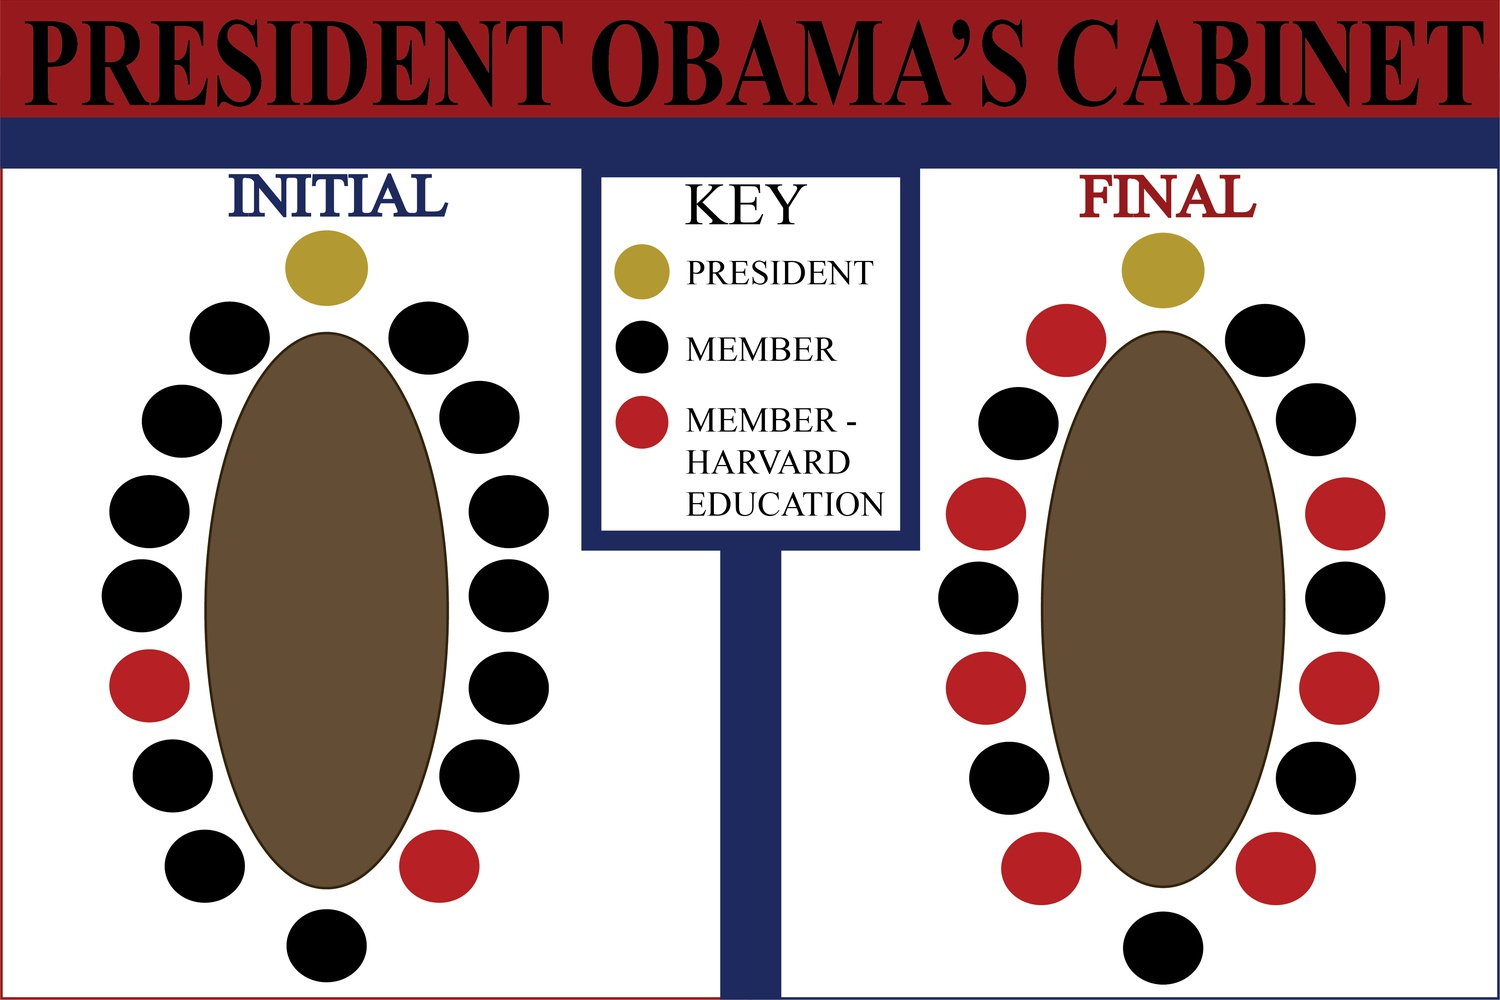 President Barack Obama gained five Harvard-educated secretaries over the course of his presidency.